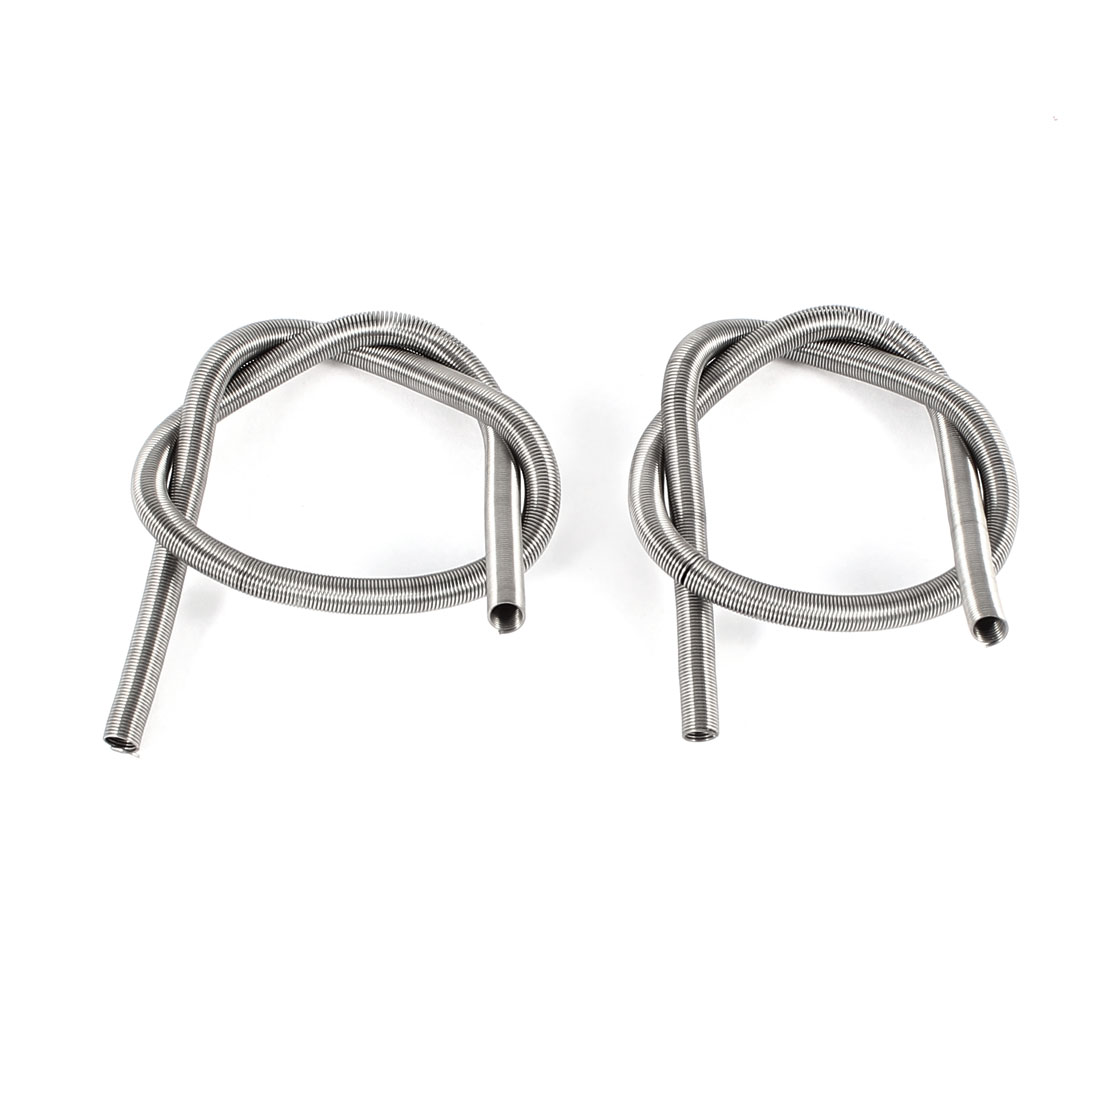 2PCS 220V 700W Watts 27cm x 4.6mm Heating Element Coil Heater Wire Leads for Kiln Furnace